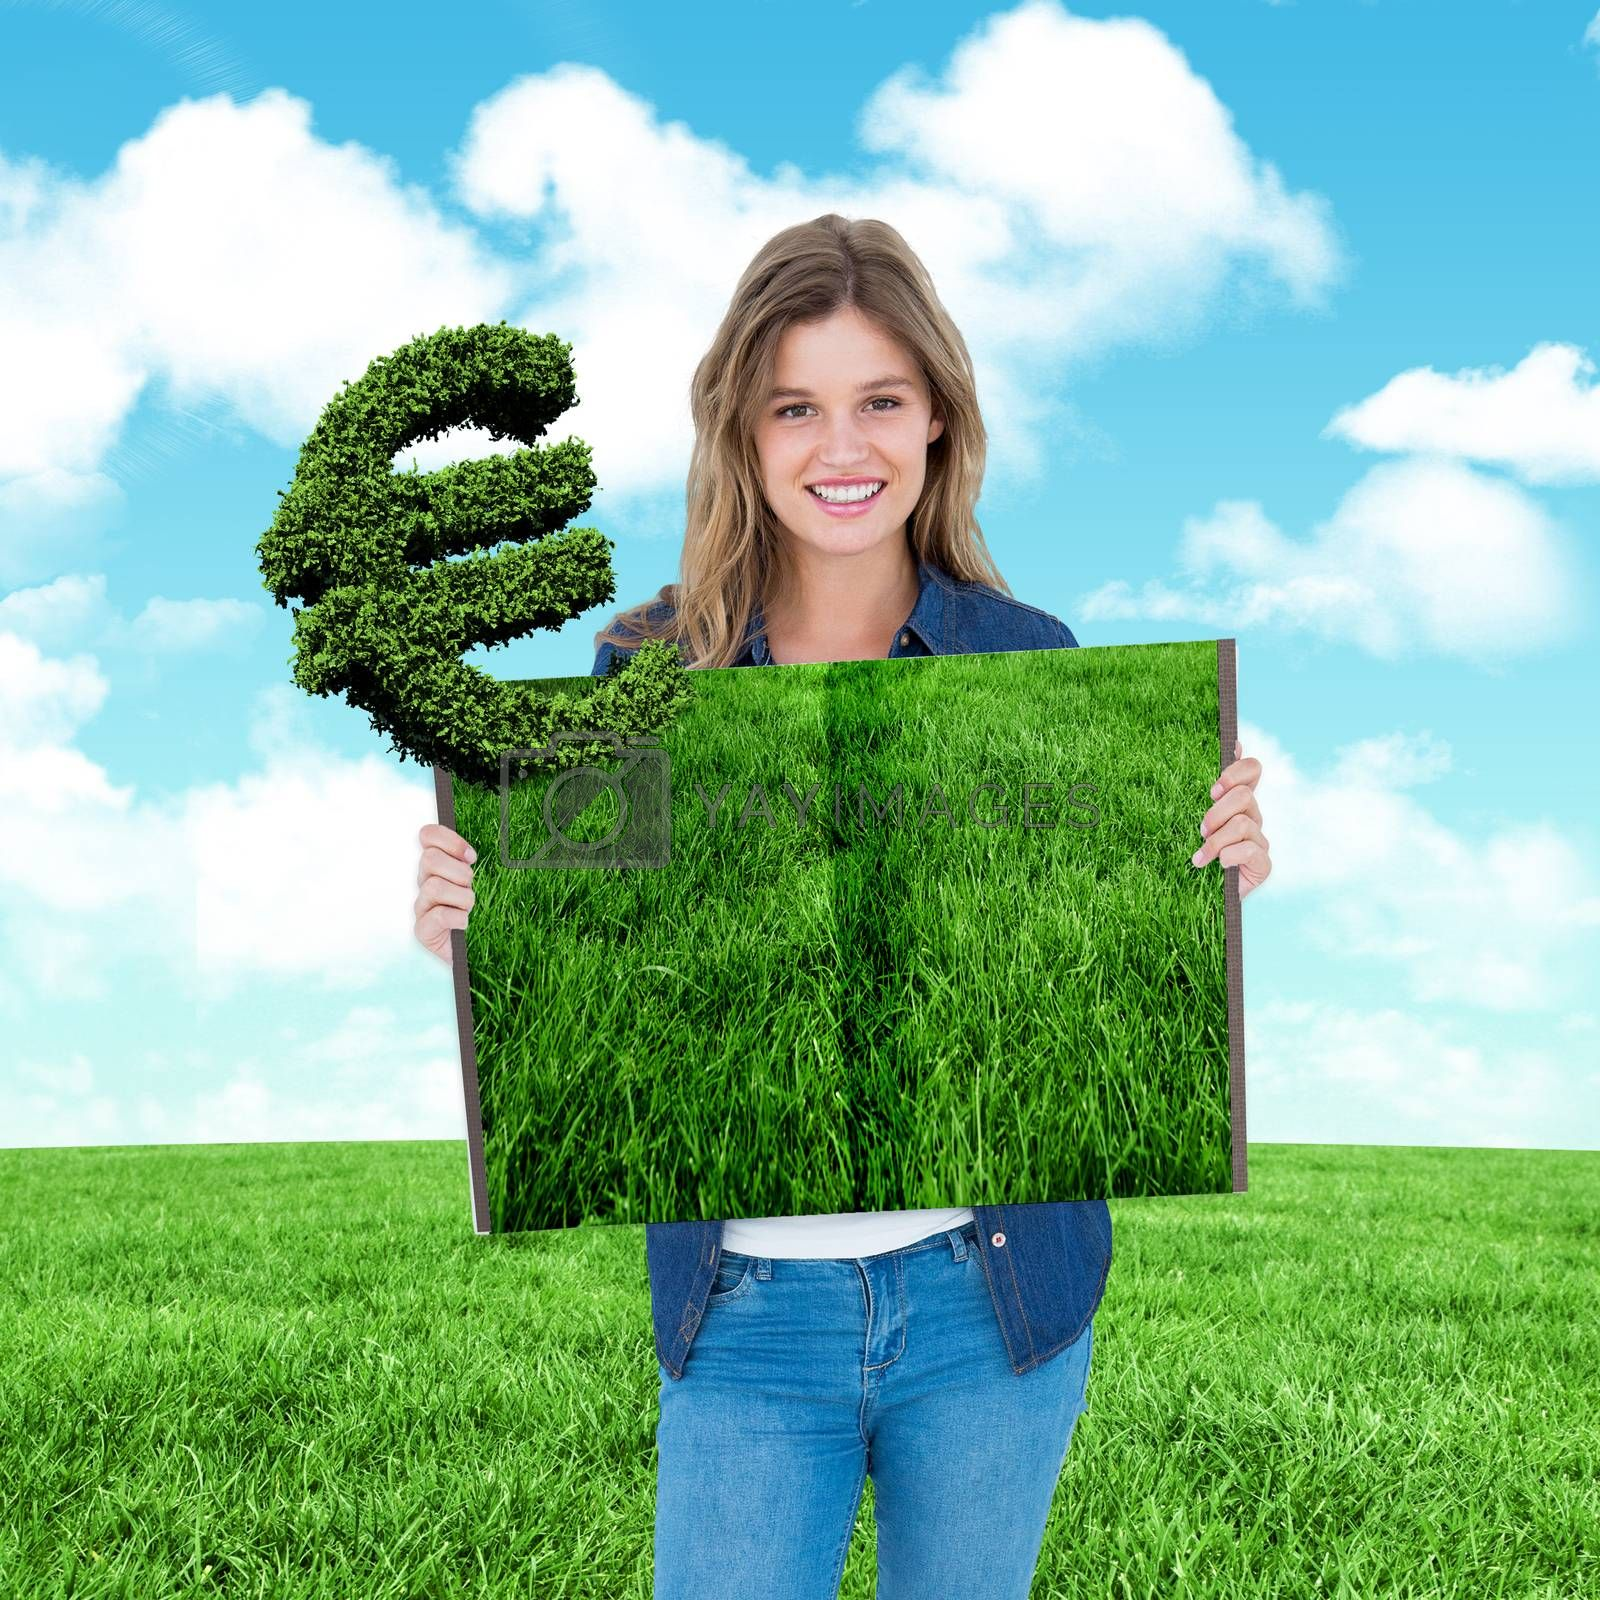 Woman holding lawn book against blue sky over green field